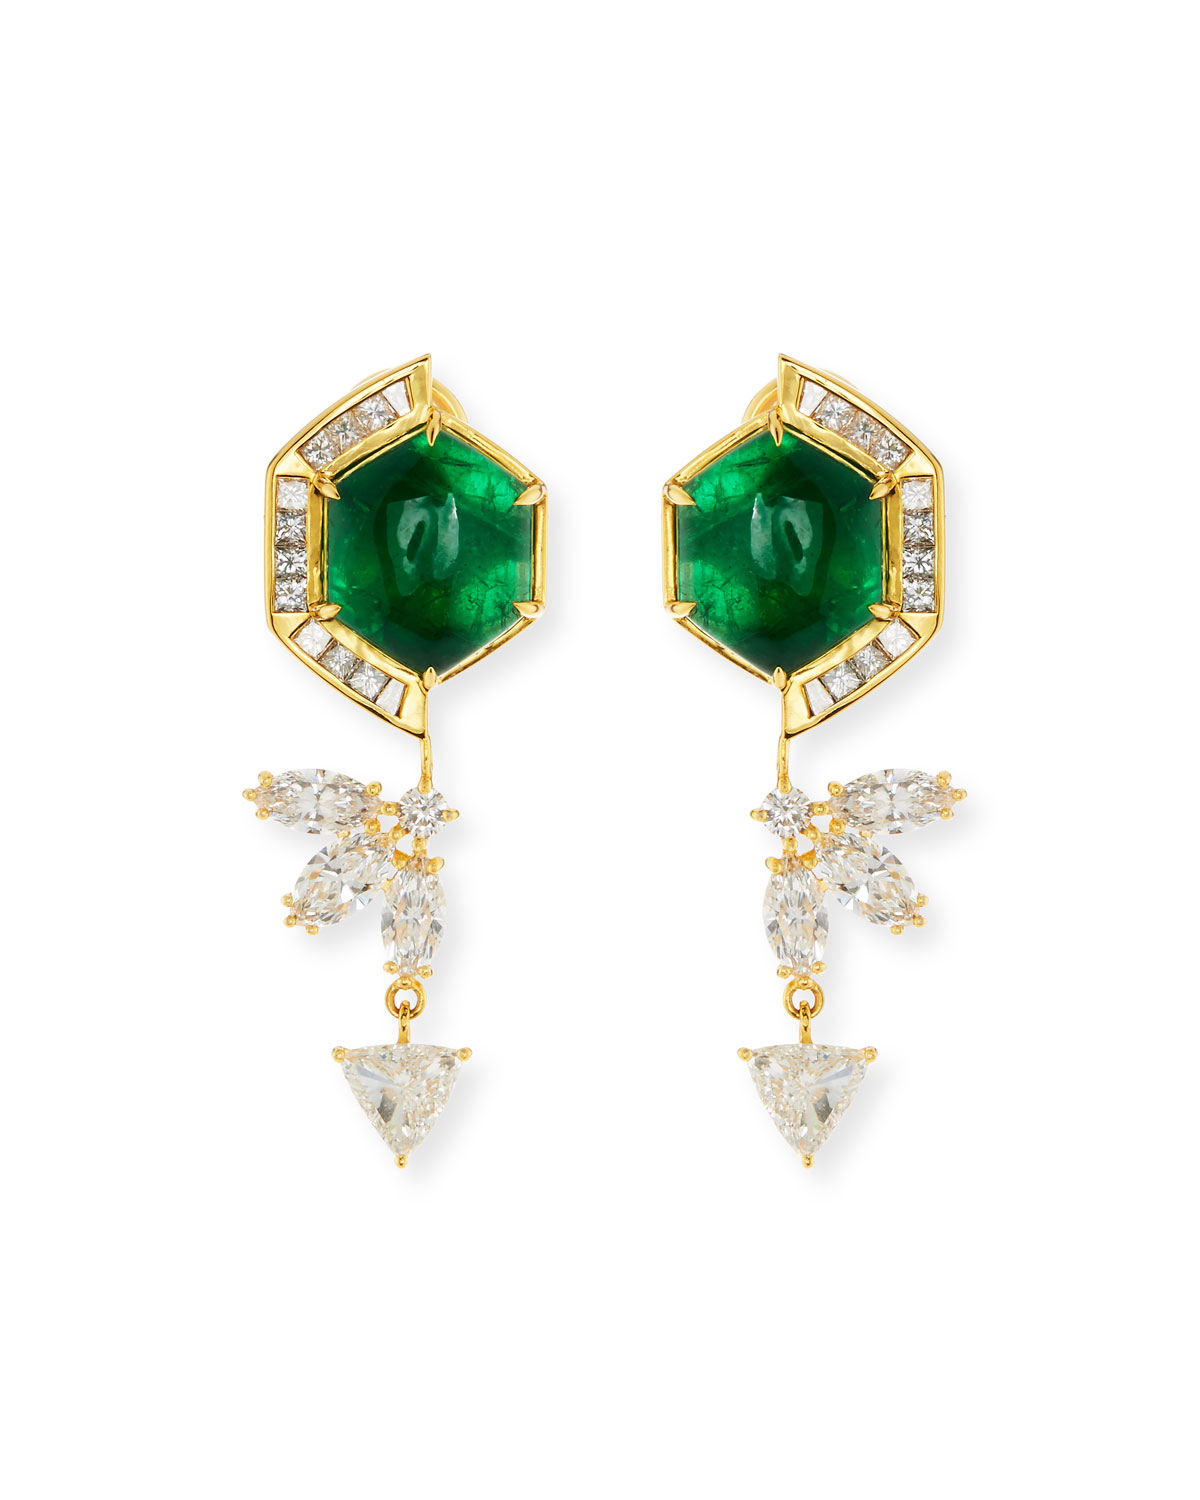 BUDDHA MAMA 20K HEXAGON EMERALD & DIAMOND DROP EARRINGS